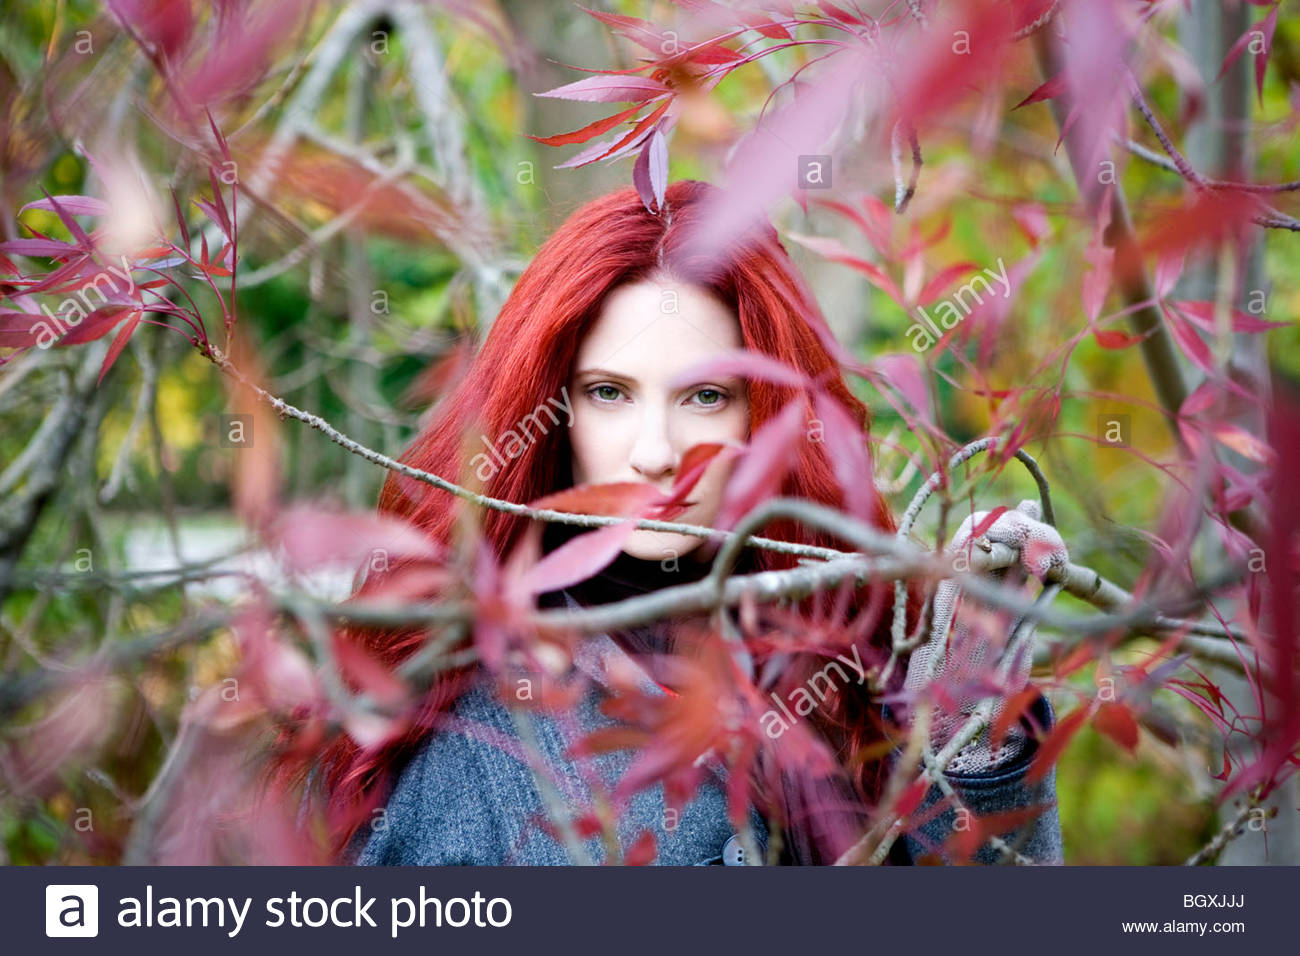 A young woman standing amongst trees in autumn time - Stock Image